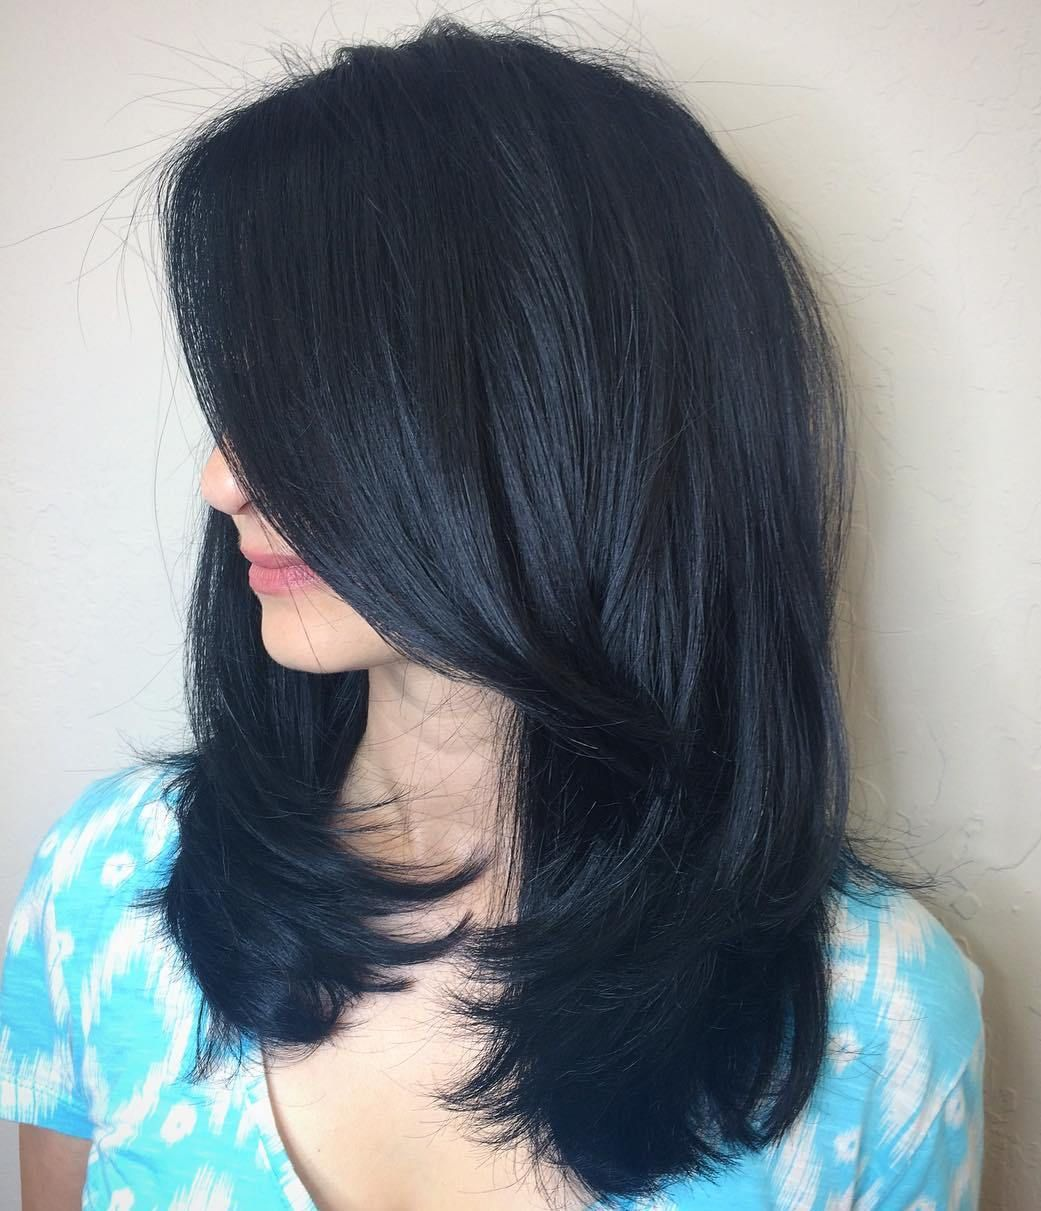 Blue Black Hair How To Get It Right Hair Color For Black Hair Blue Black Hair Blue Black Hair Color